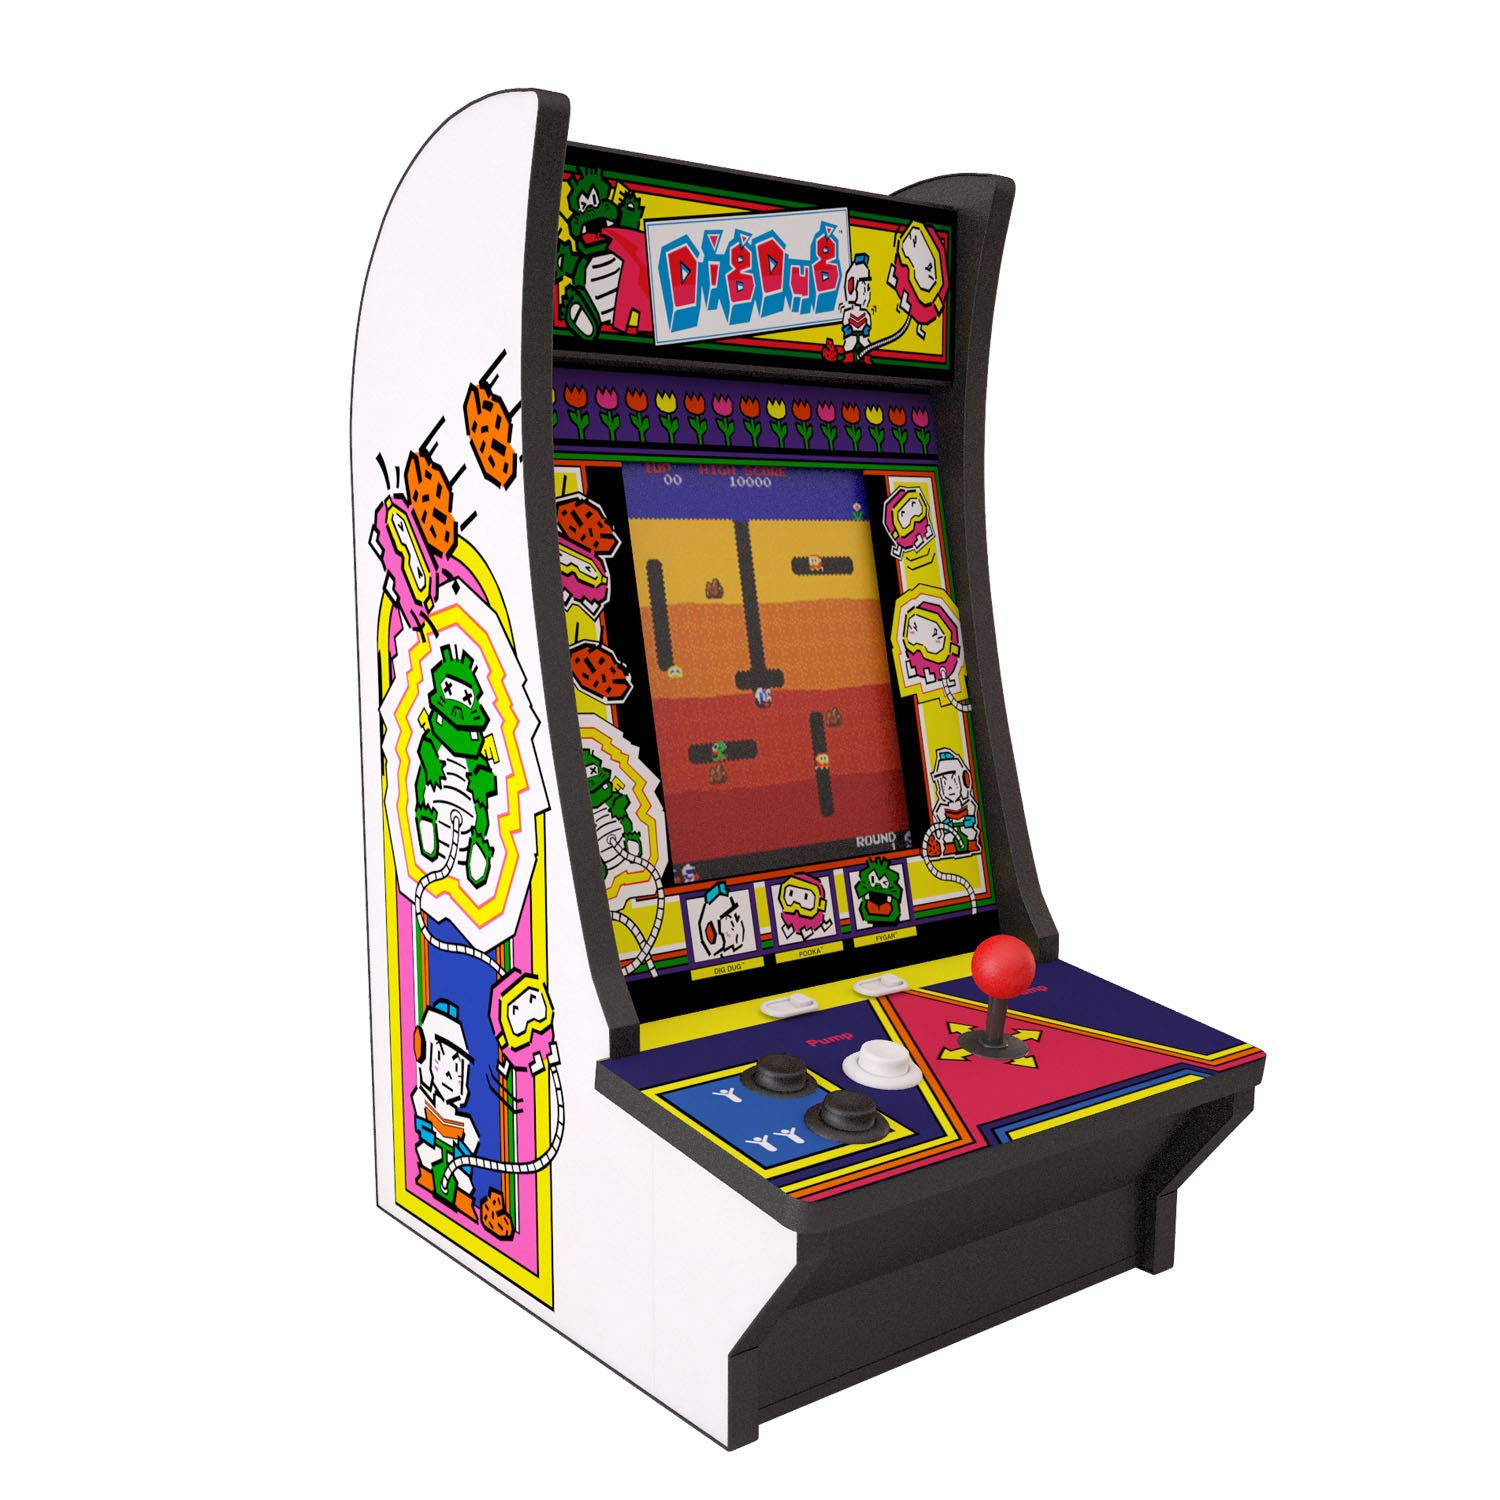 Arcade 1Up Dig Dug Countercade Arcade System